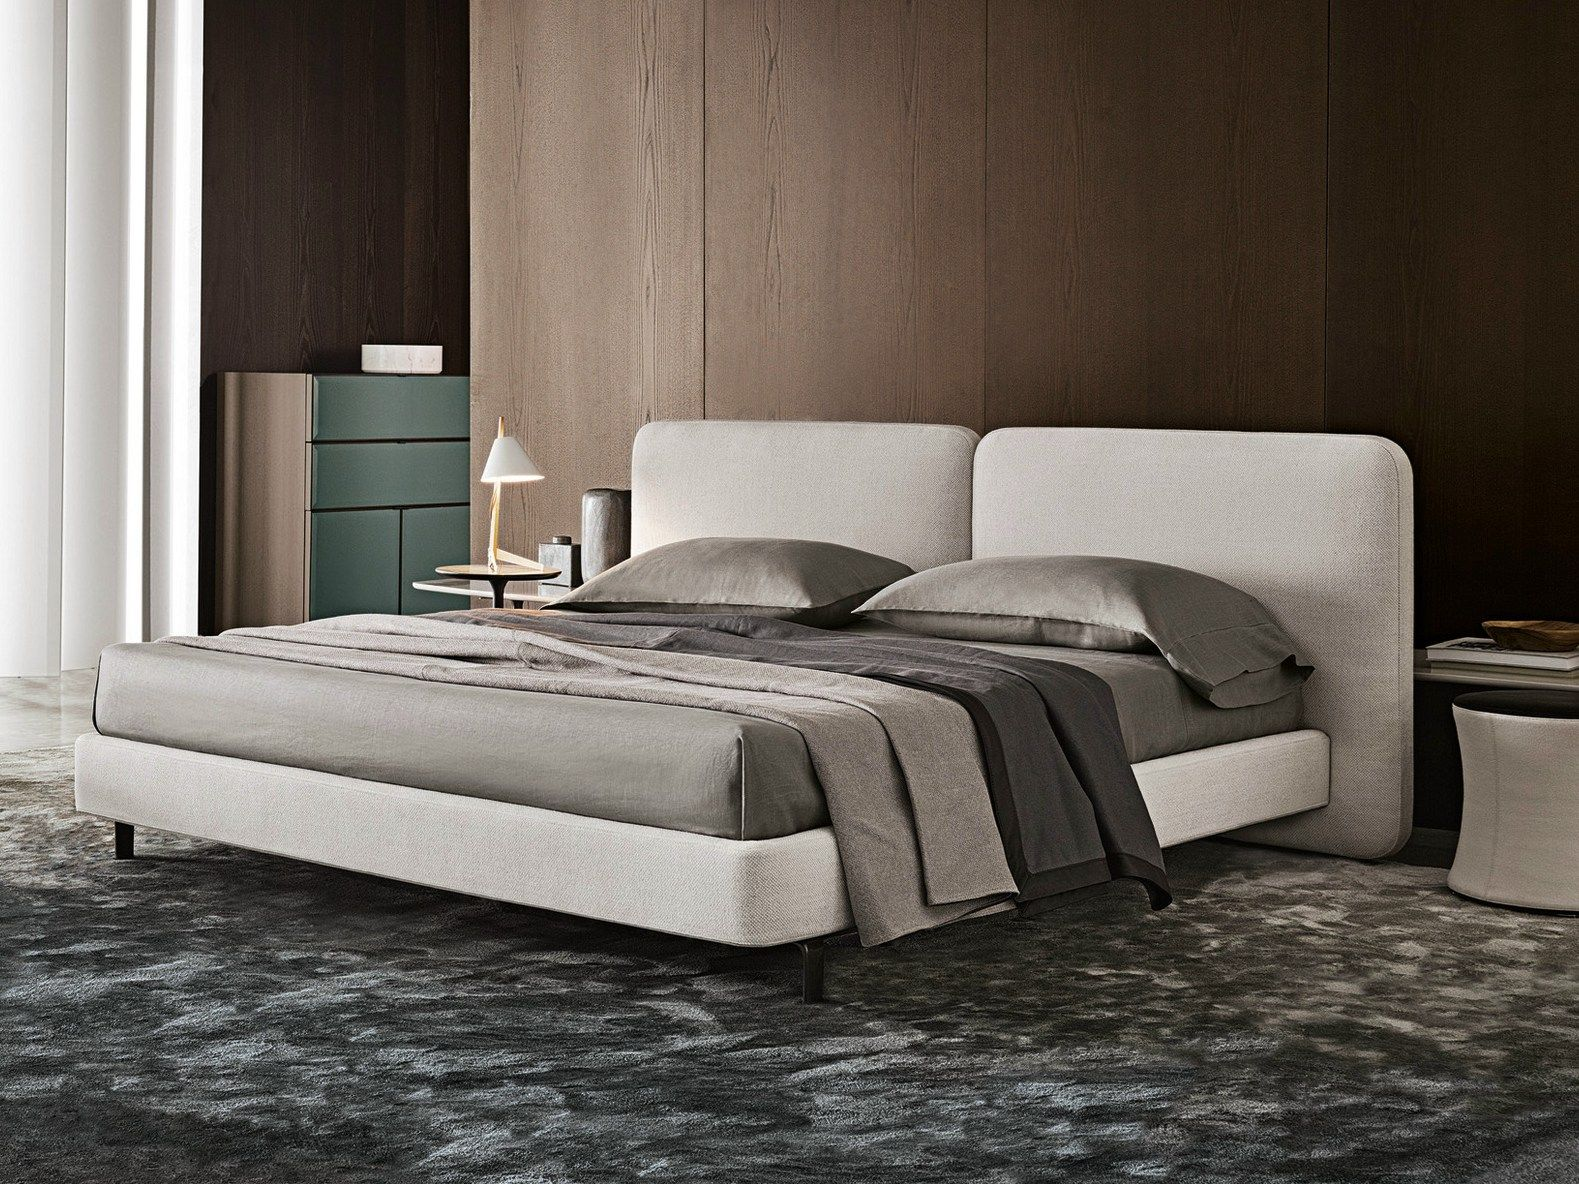 Matrimonio Bed Cover : Double bed with upholstered headboard tatlin cover by